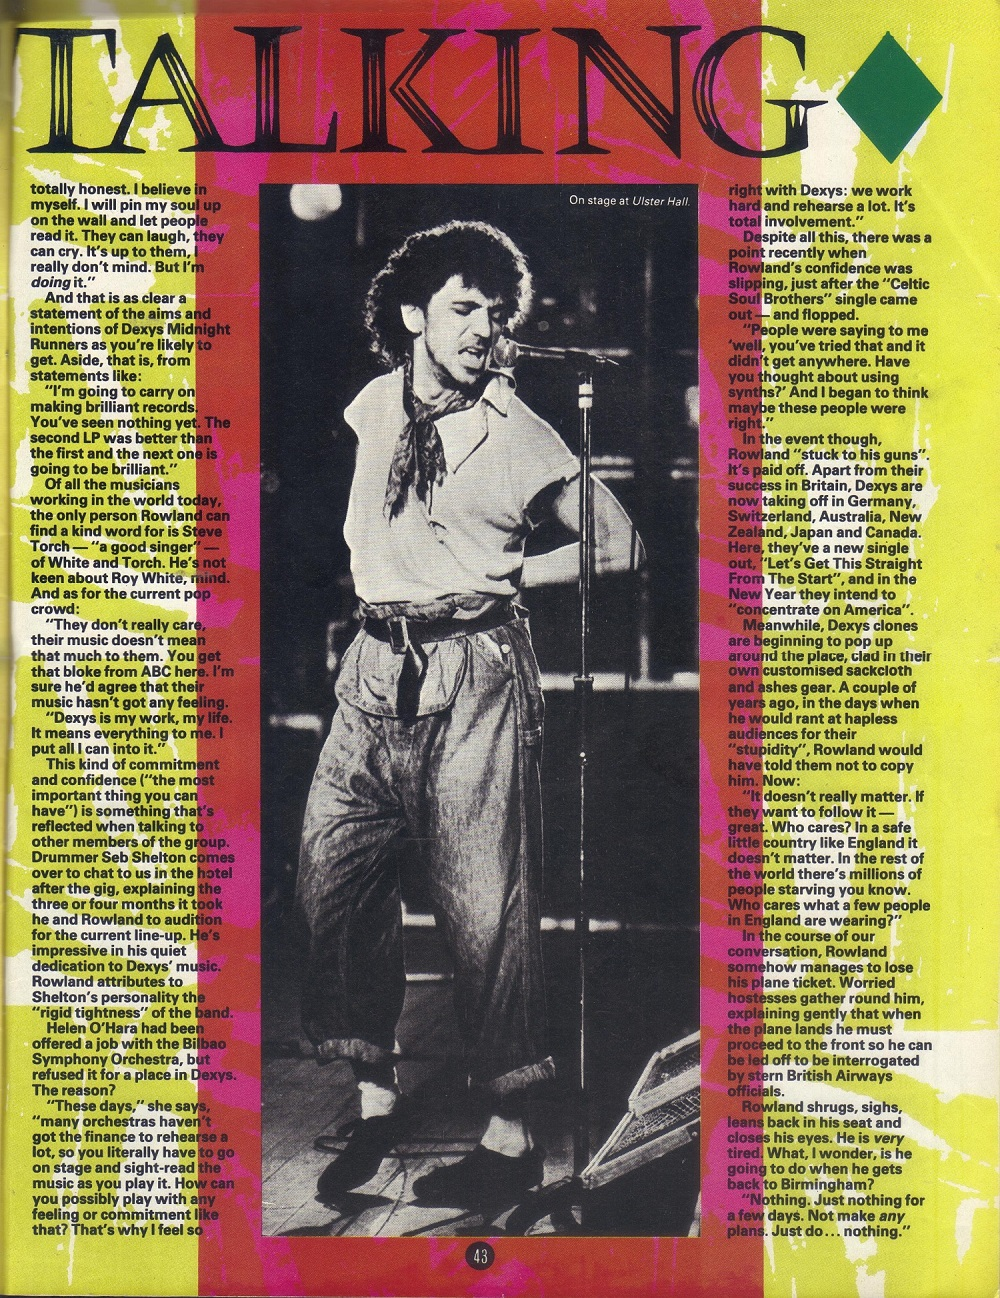 Smash_Hits_Interview_Part_Two_09_12_82.jpg